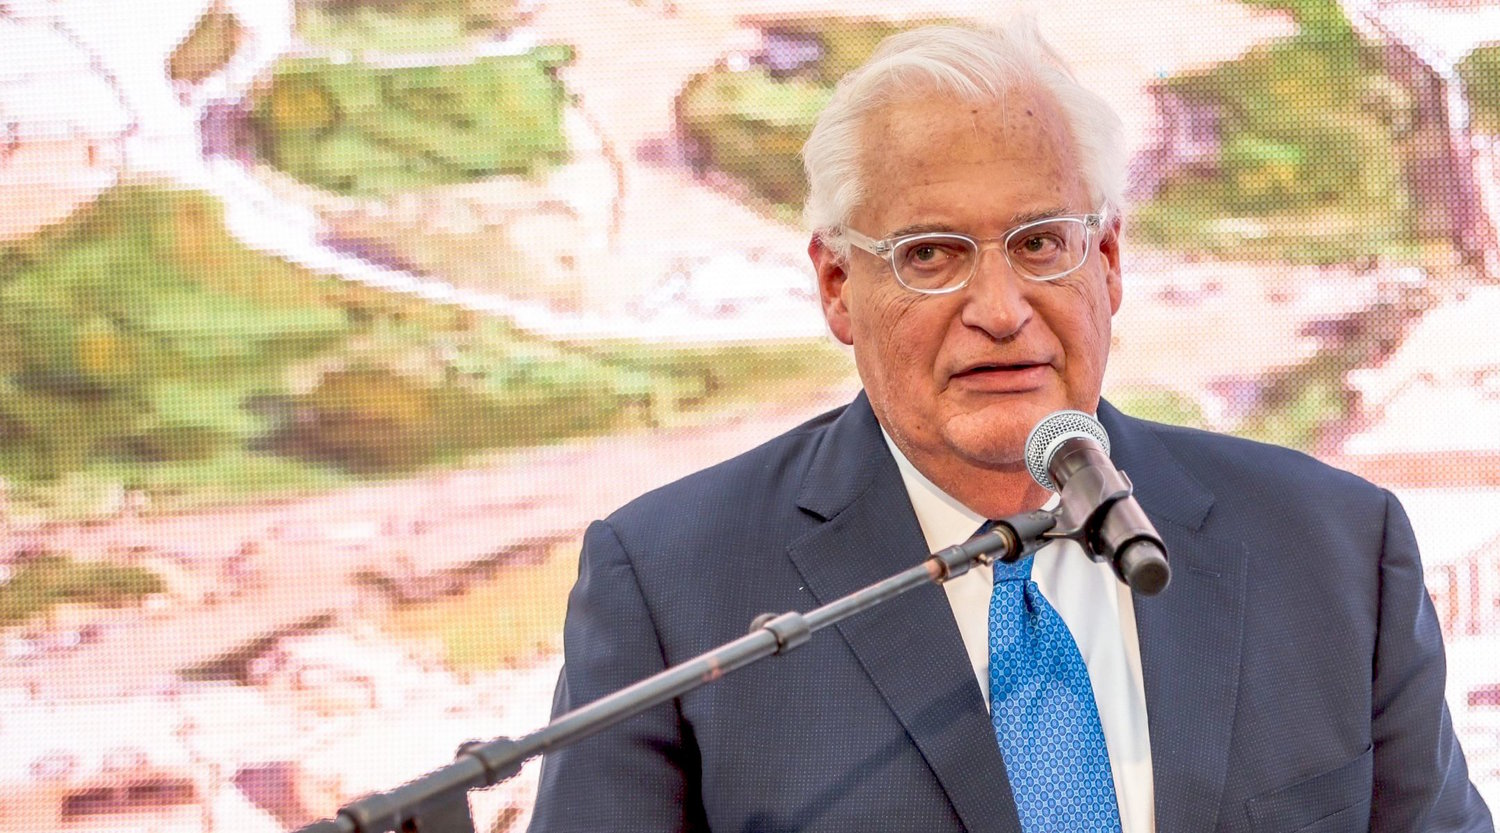 U.S. Ambassador to Israel David Friedman at the opening of Pilgrimage Road at the City of David archaeological site in the eastern Jerusalem neighborhood of Silwan on June 30.